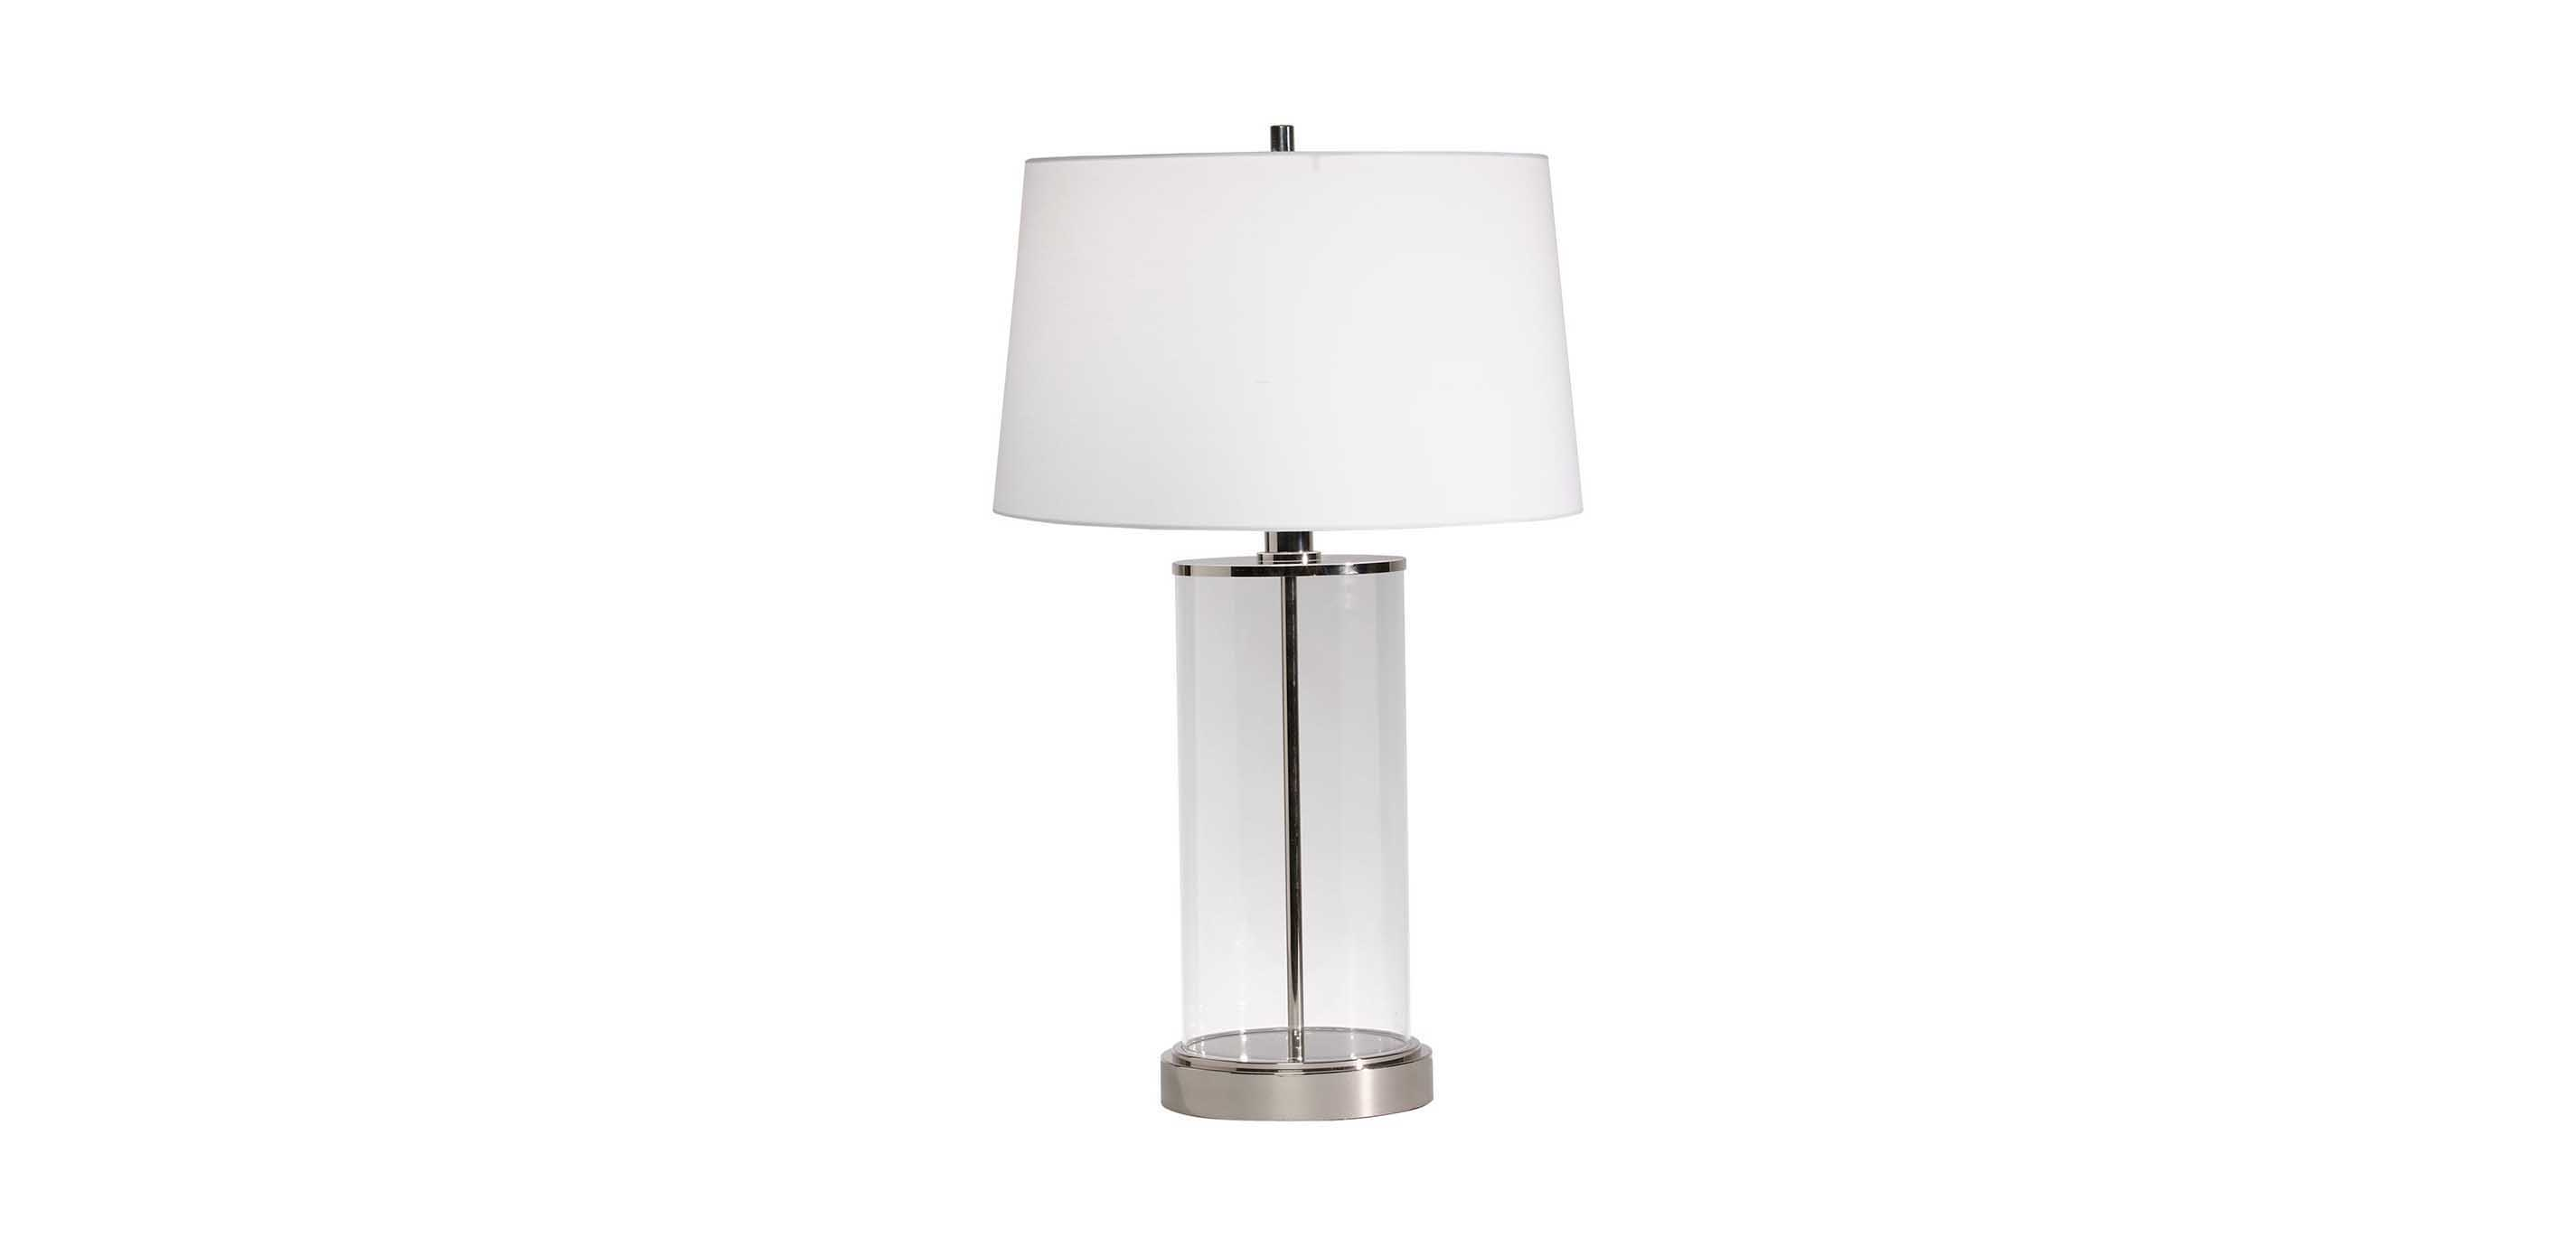 lamps tube devon of light cylinder reading john bubble retro antique tank best fresh fake uk standing water tower fish elica floor mood led lamp free table tall lewis